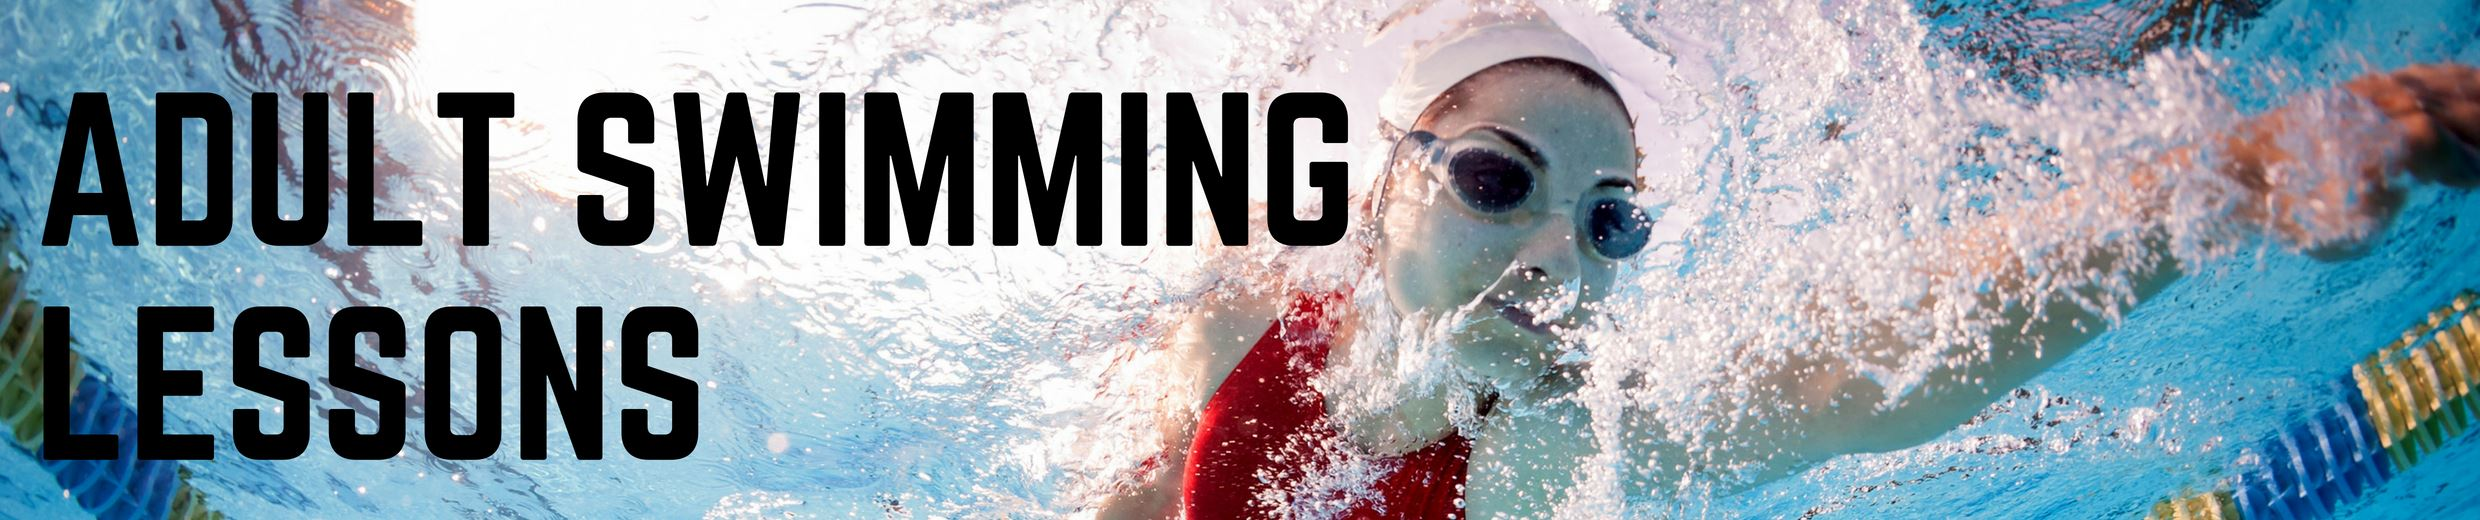 """Adult Swim Lessons"" banner with image of adult swimmer in pool"